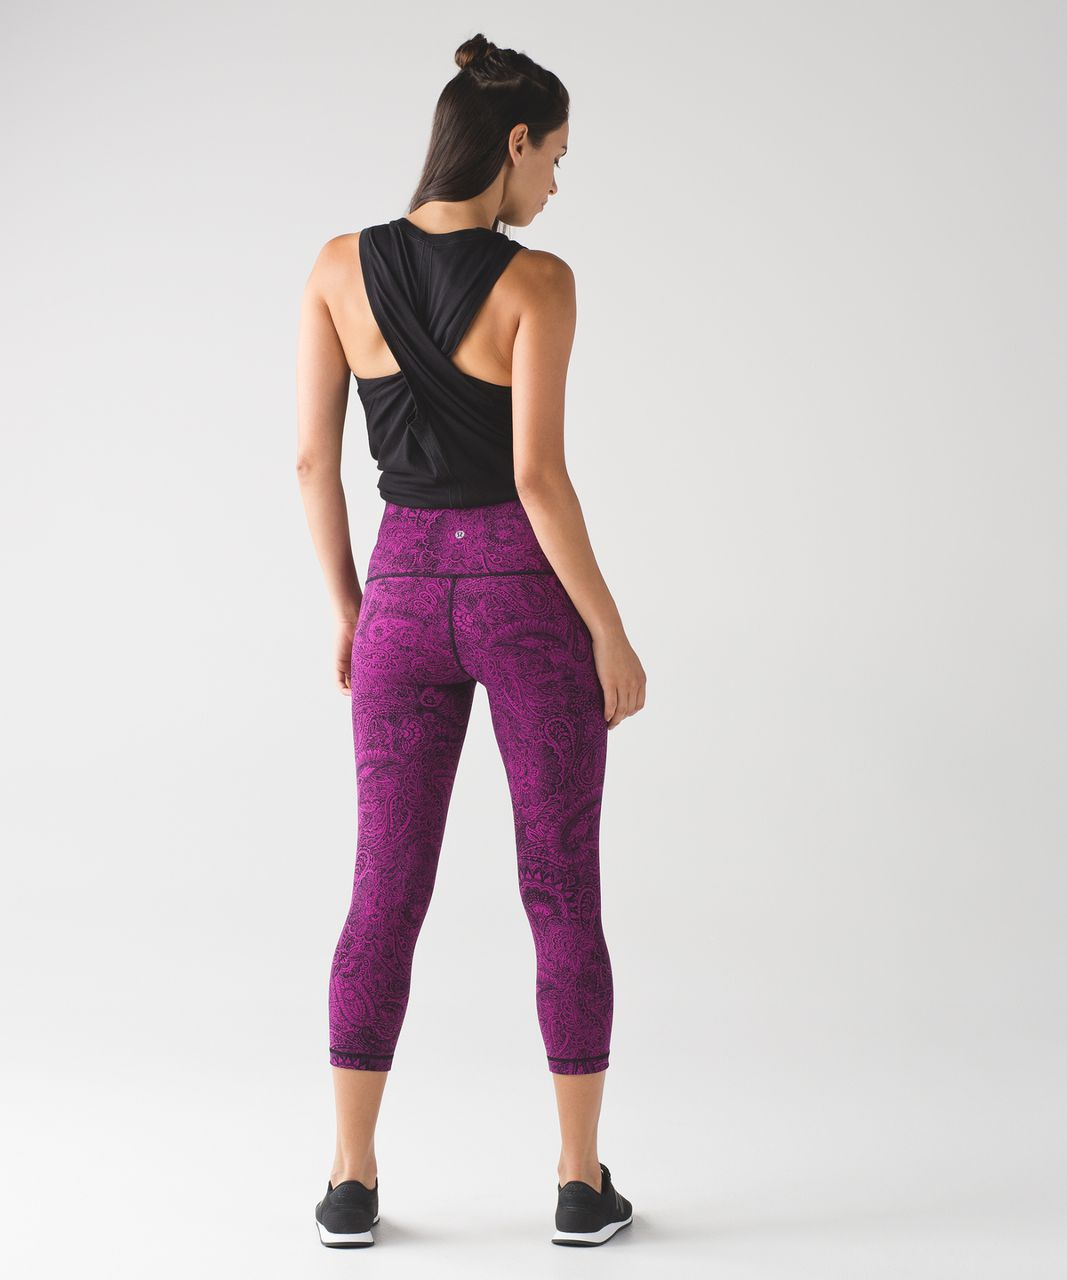 Lululemon Wunder Under Crop (Hi-Rise) - Antique Paisley Deep Fuschia Black